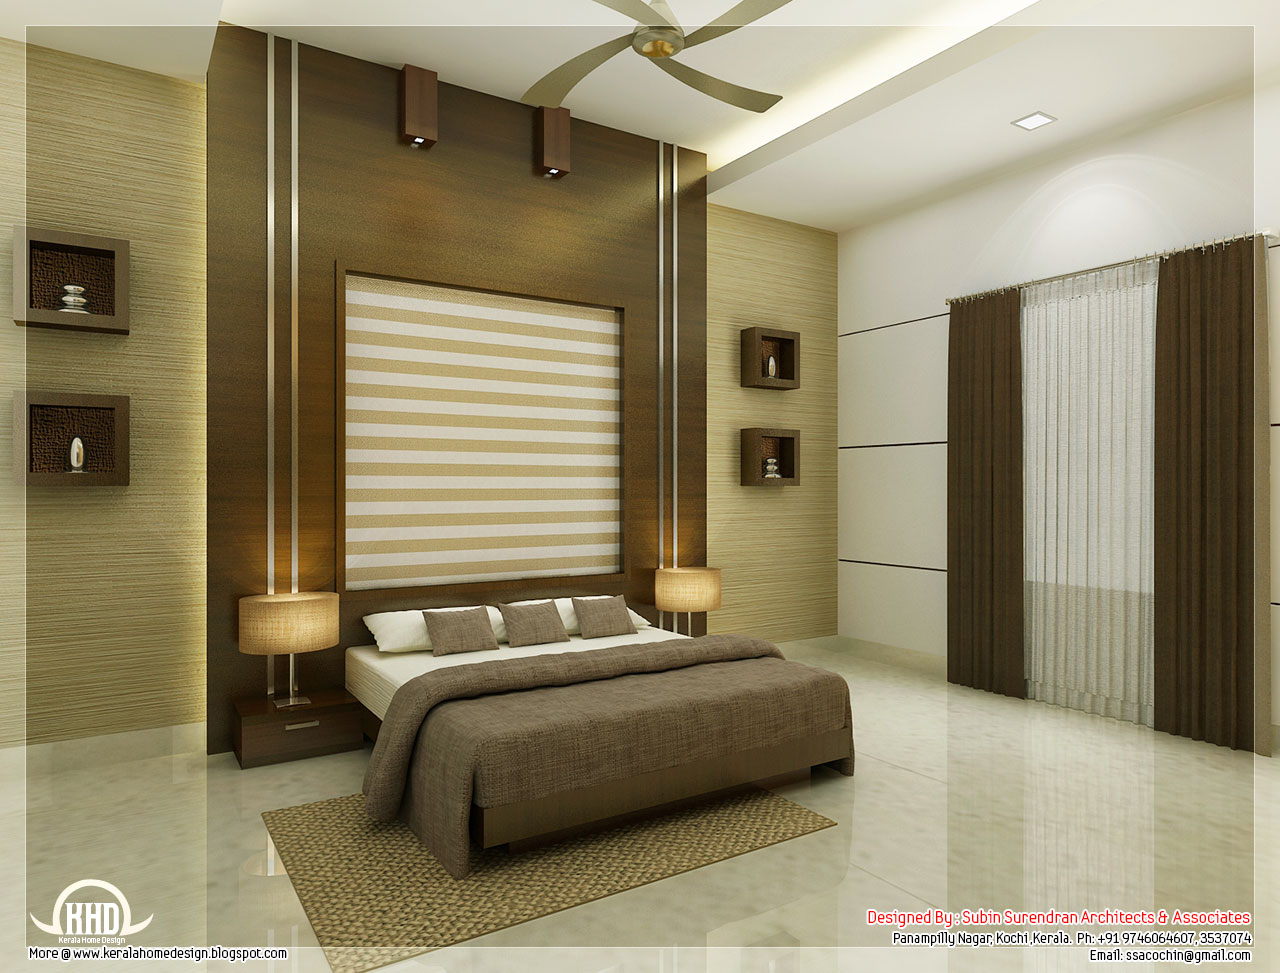 beautiful bedroom interior designs kerala home design and floor rh thedeepeningpool blogspot com